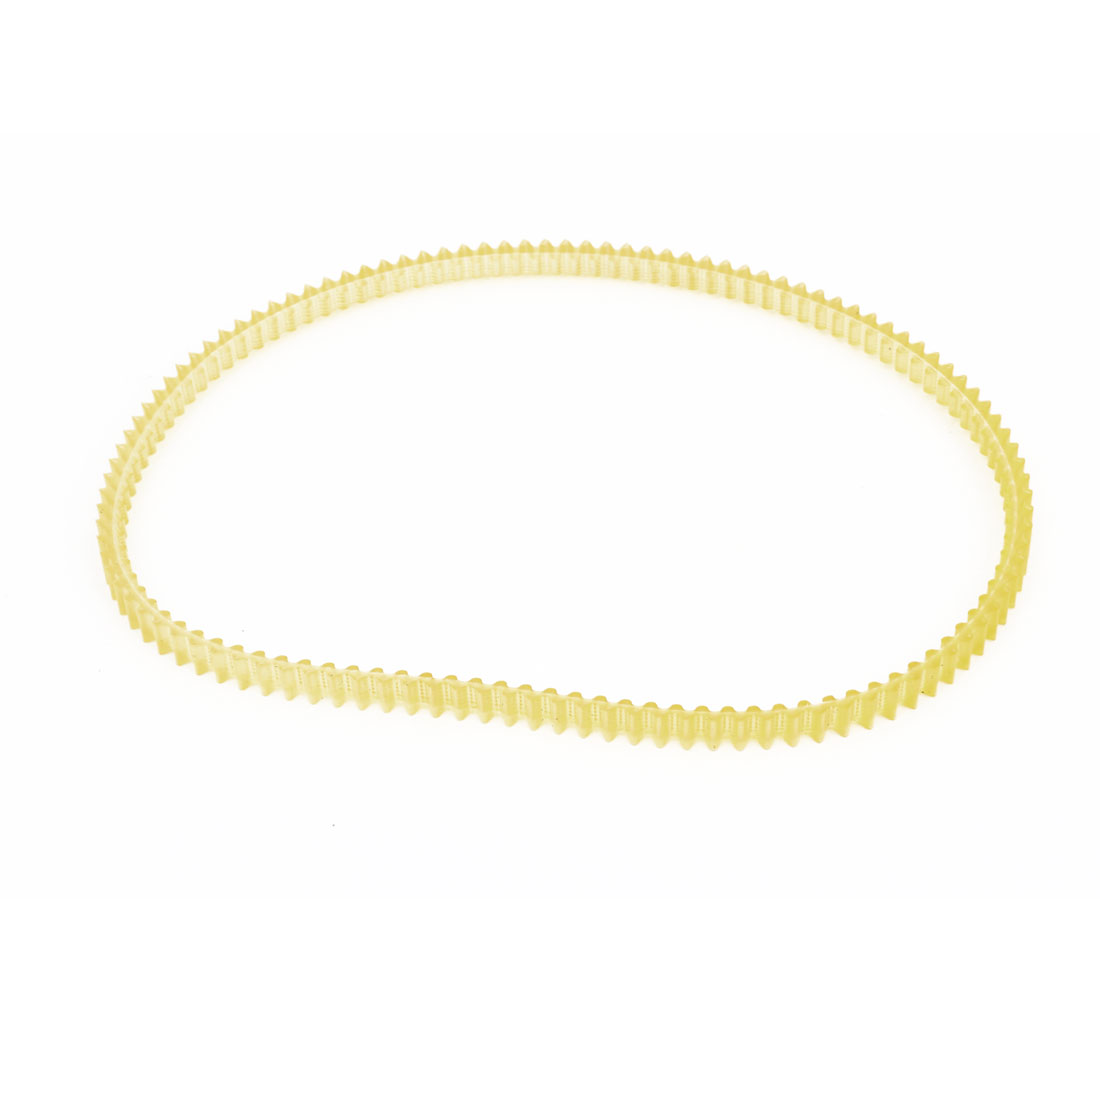 2mm Pitch 400mm Girth Double Sided Engine PU Timing Belt Yellow